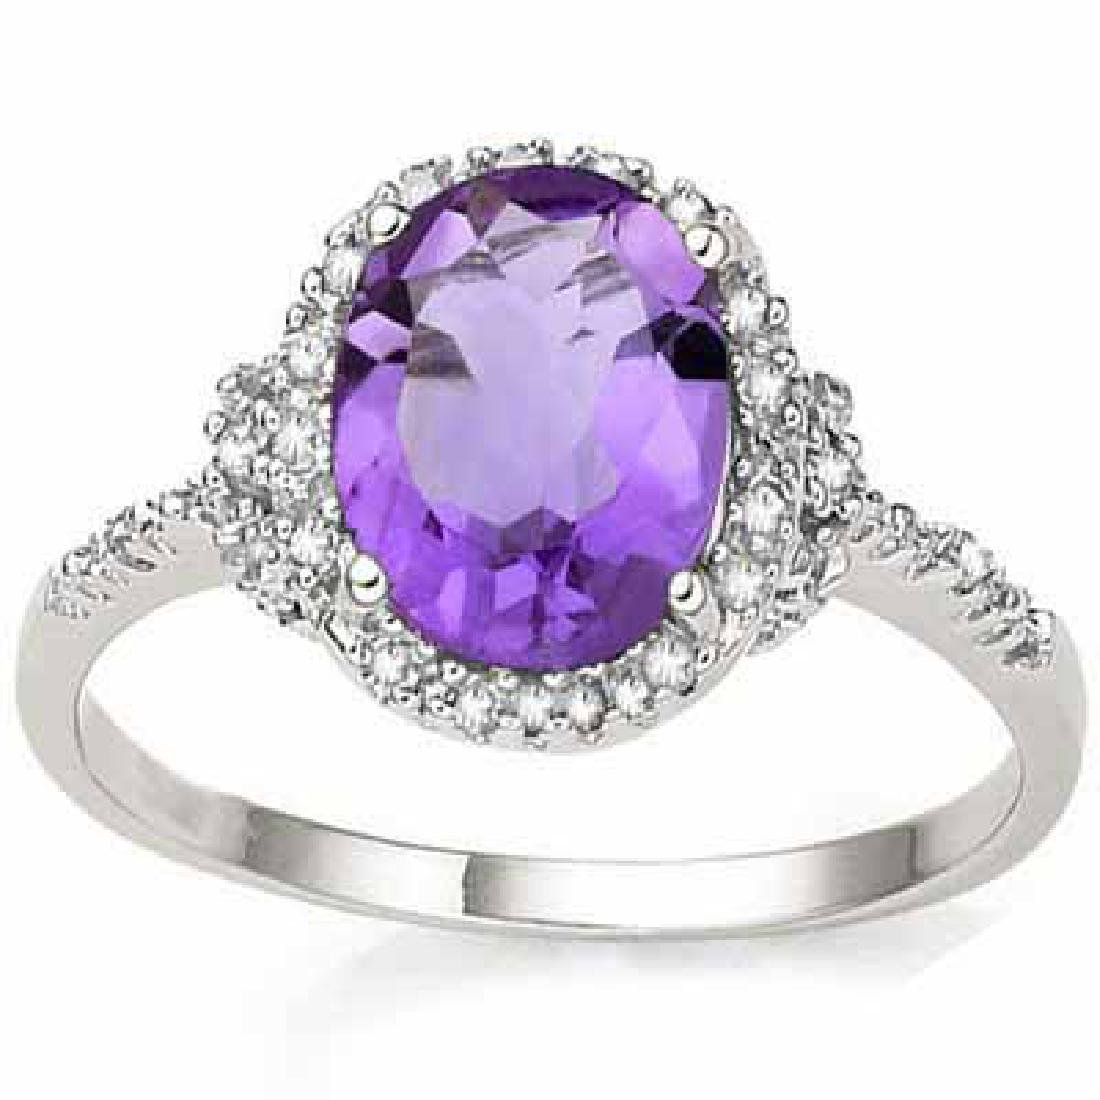 2.41 CARAT TW (3 PCS) AMETHYST & GENUINE DIAMOND PLATIN